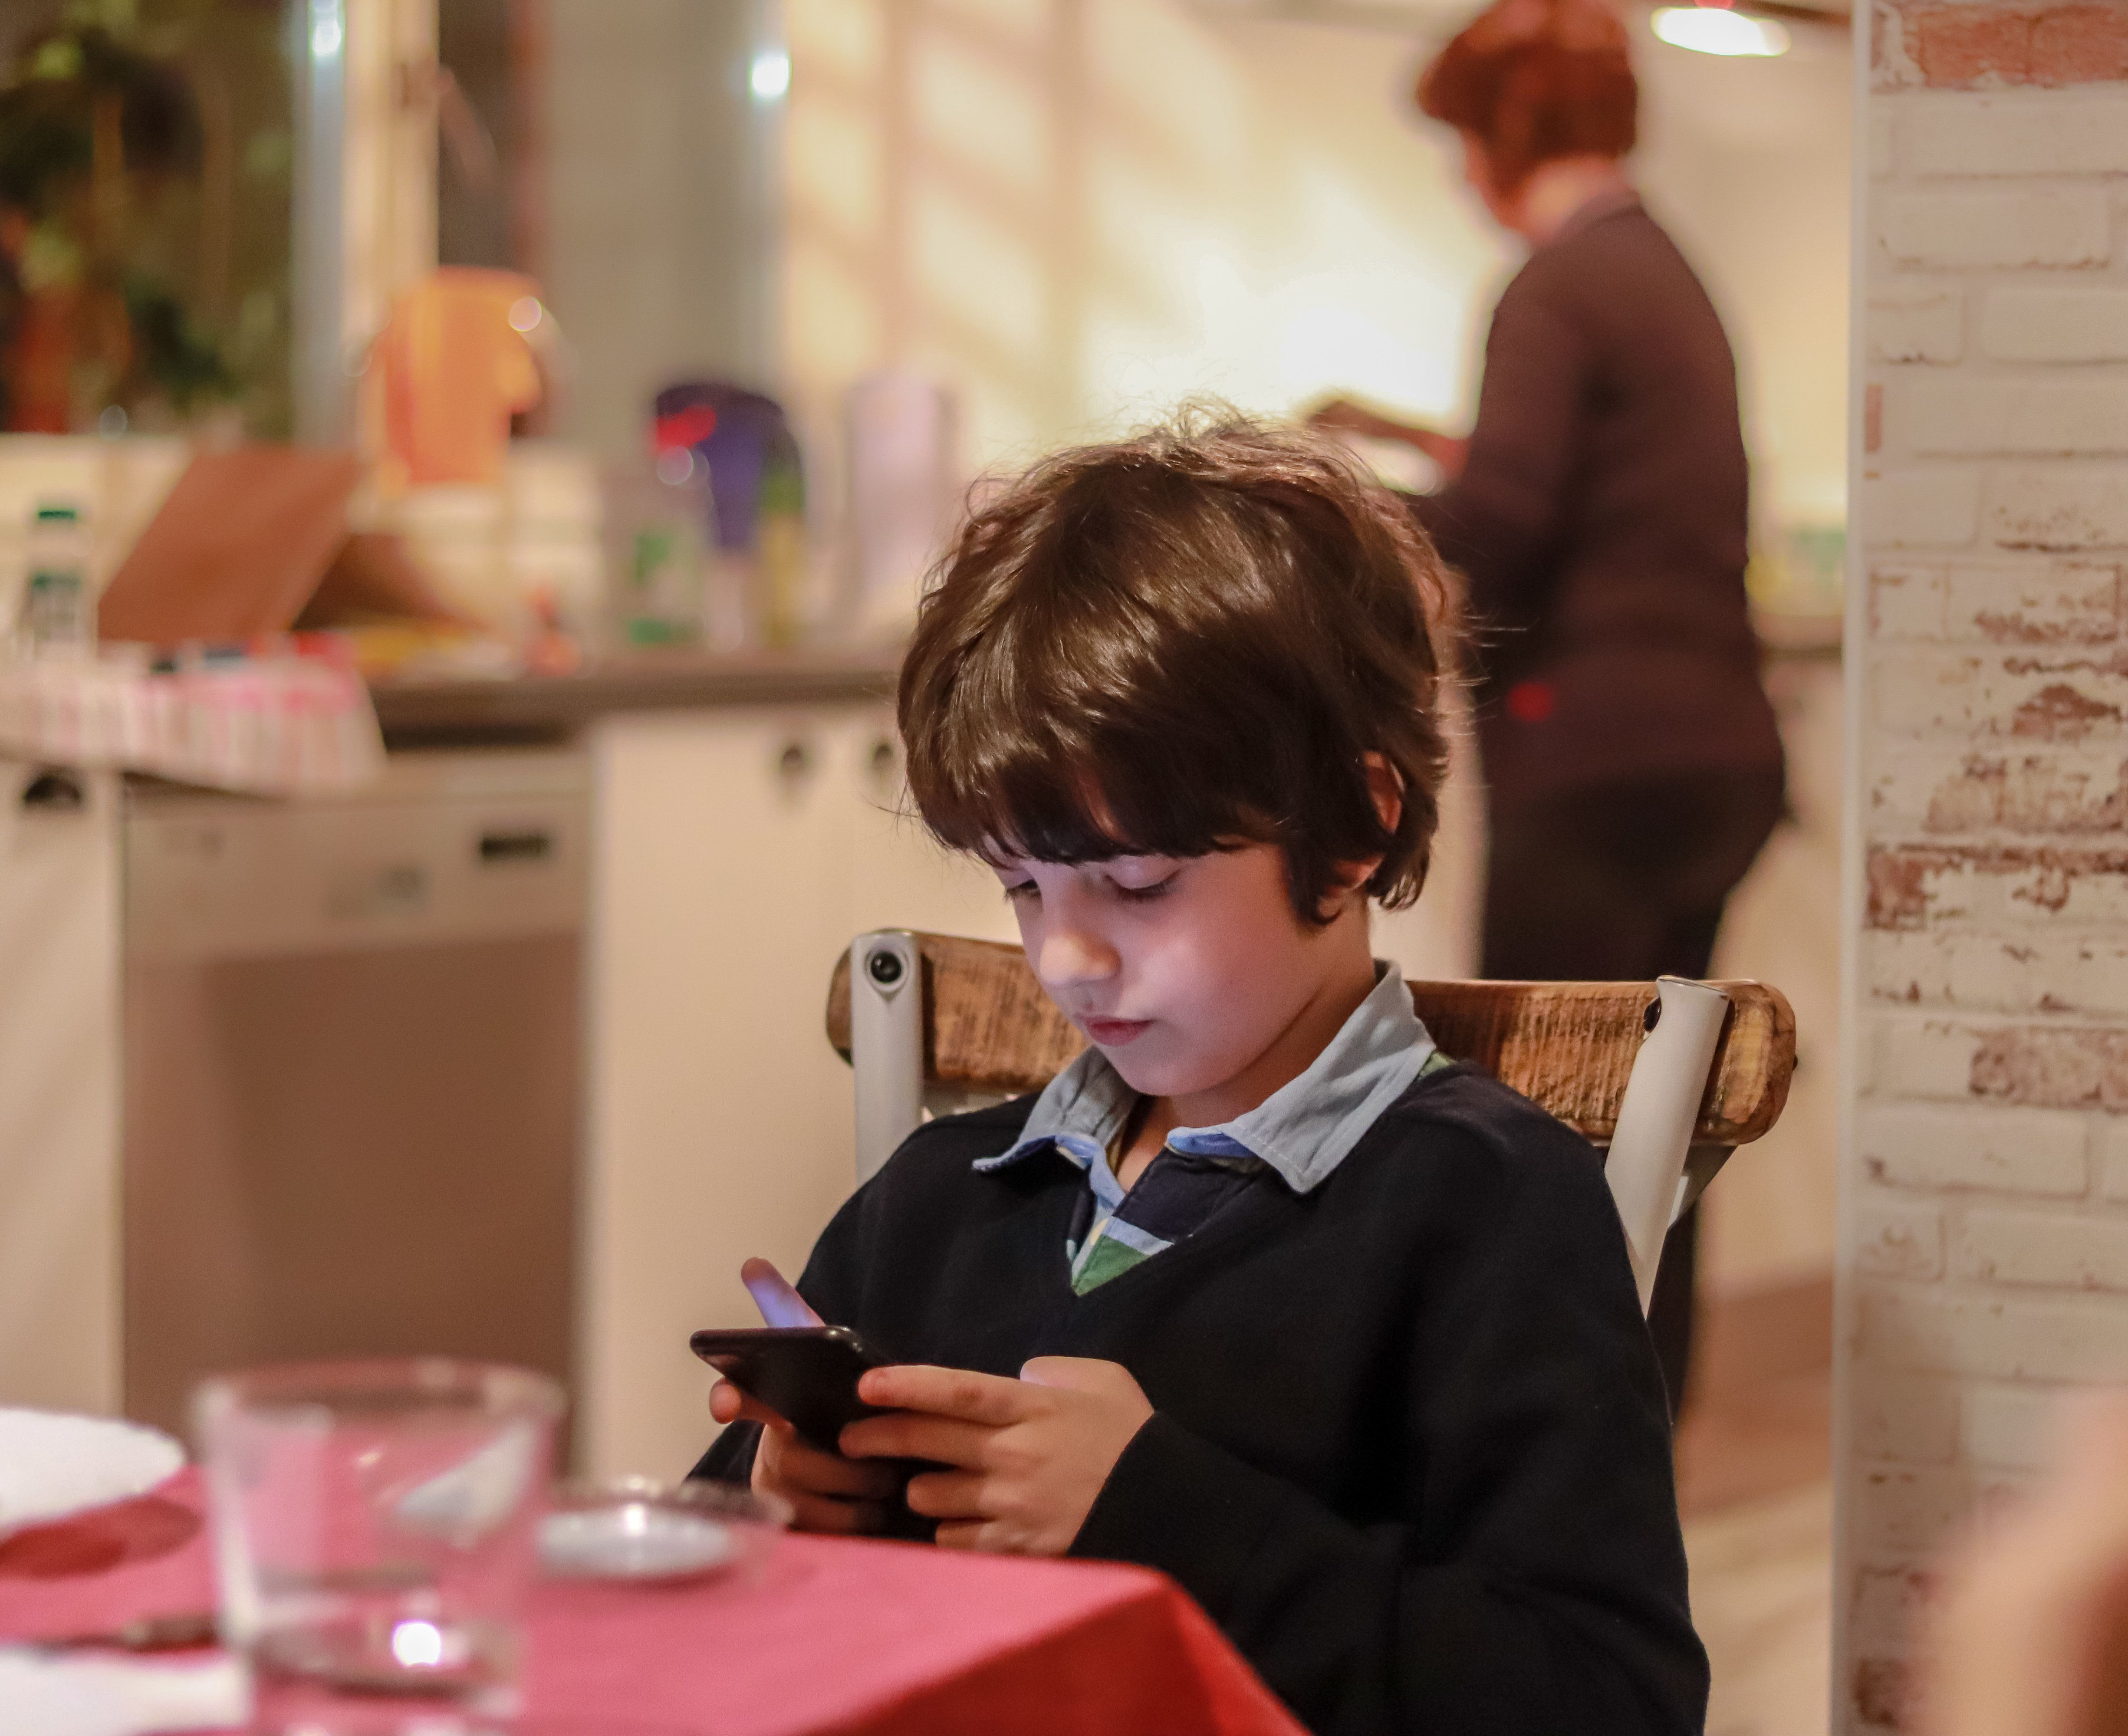 ADDICTED: 50,000 Children In The UK Are Problem Gamblers – How Do You Help Your Child If You're